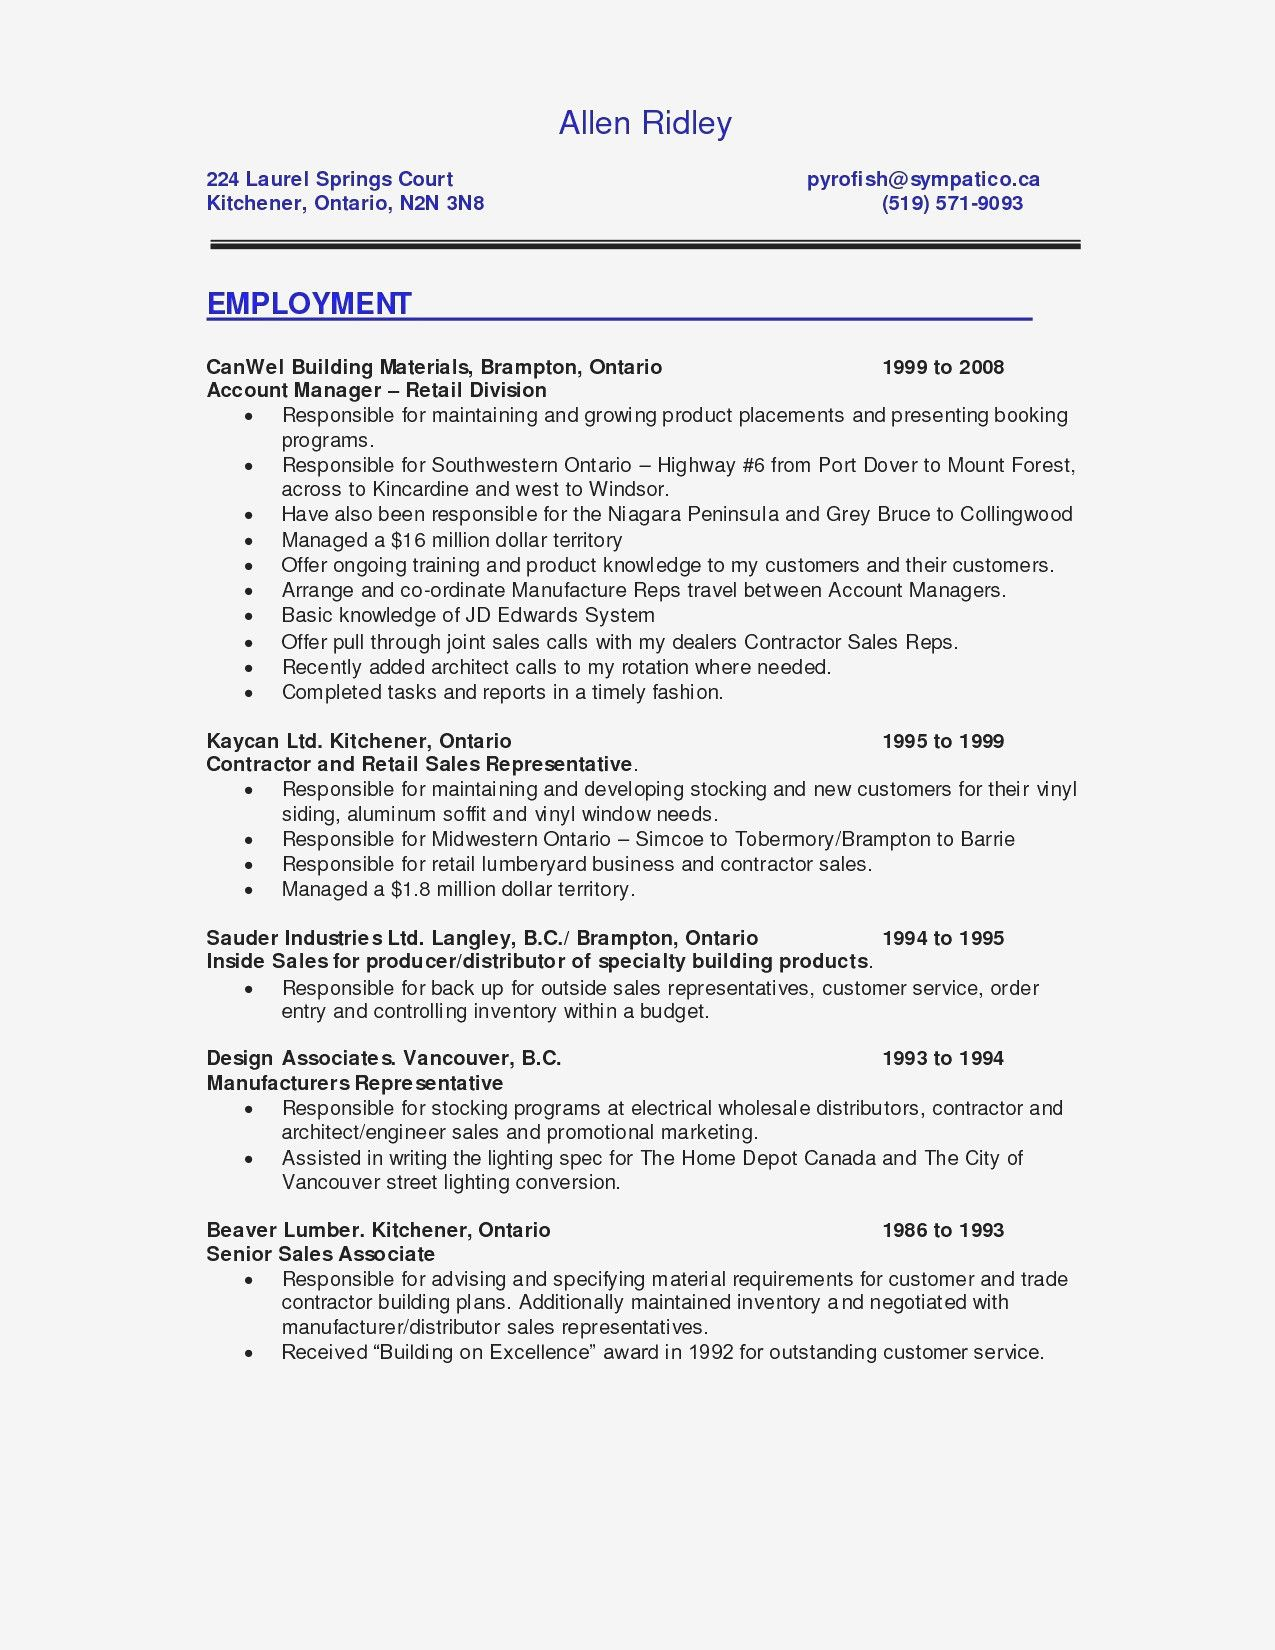 pin on cover letter designs resume for self employed people surgical assistant job Resume Resume For Self Employed People